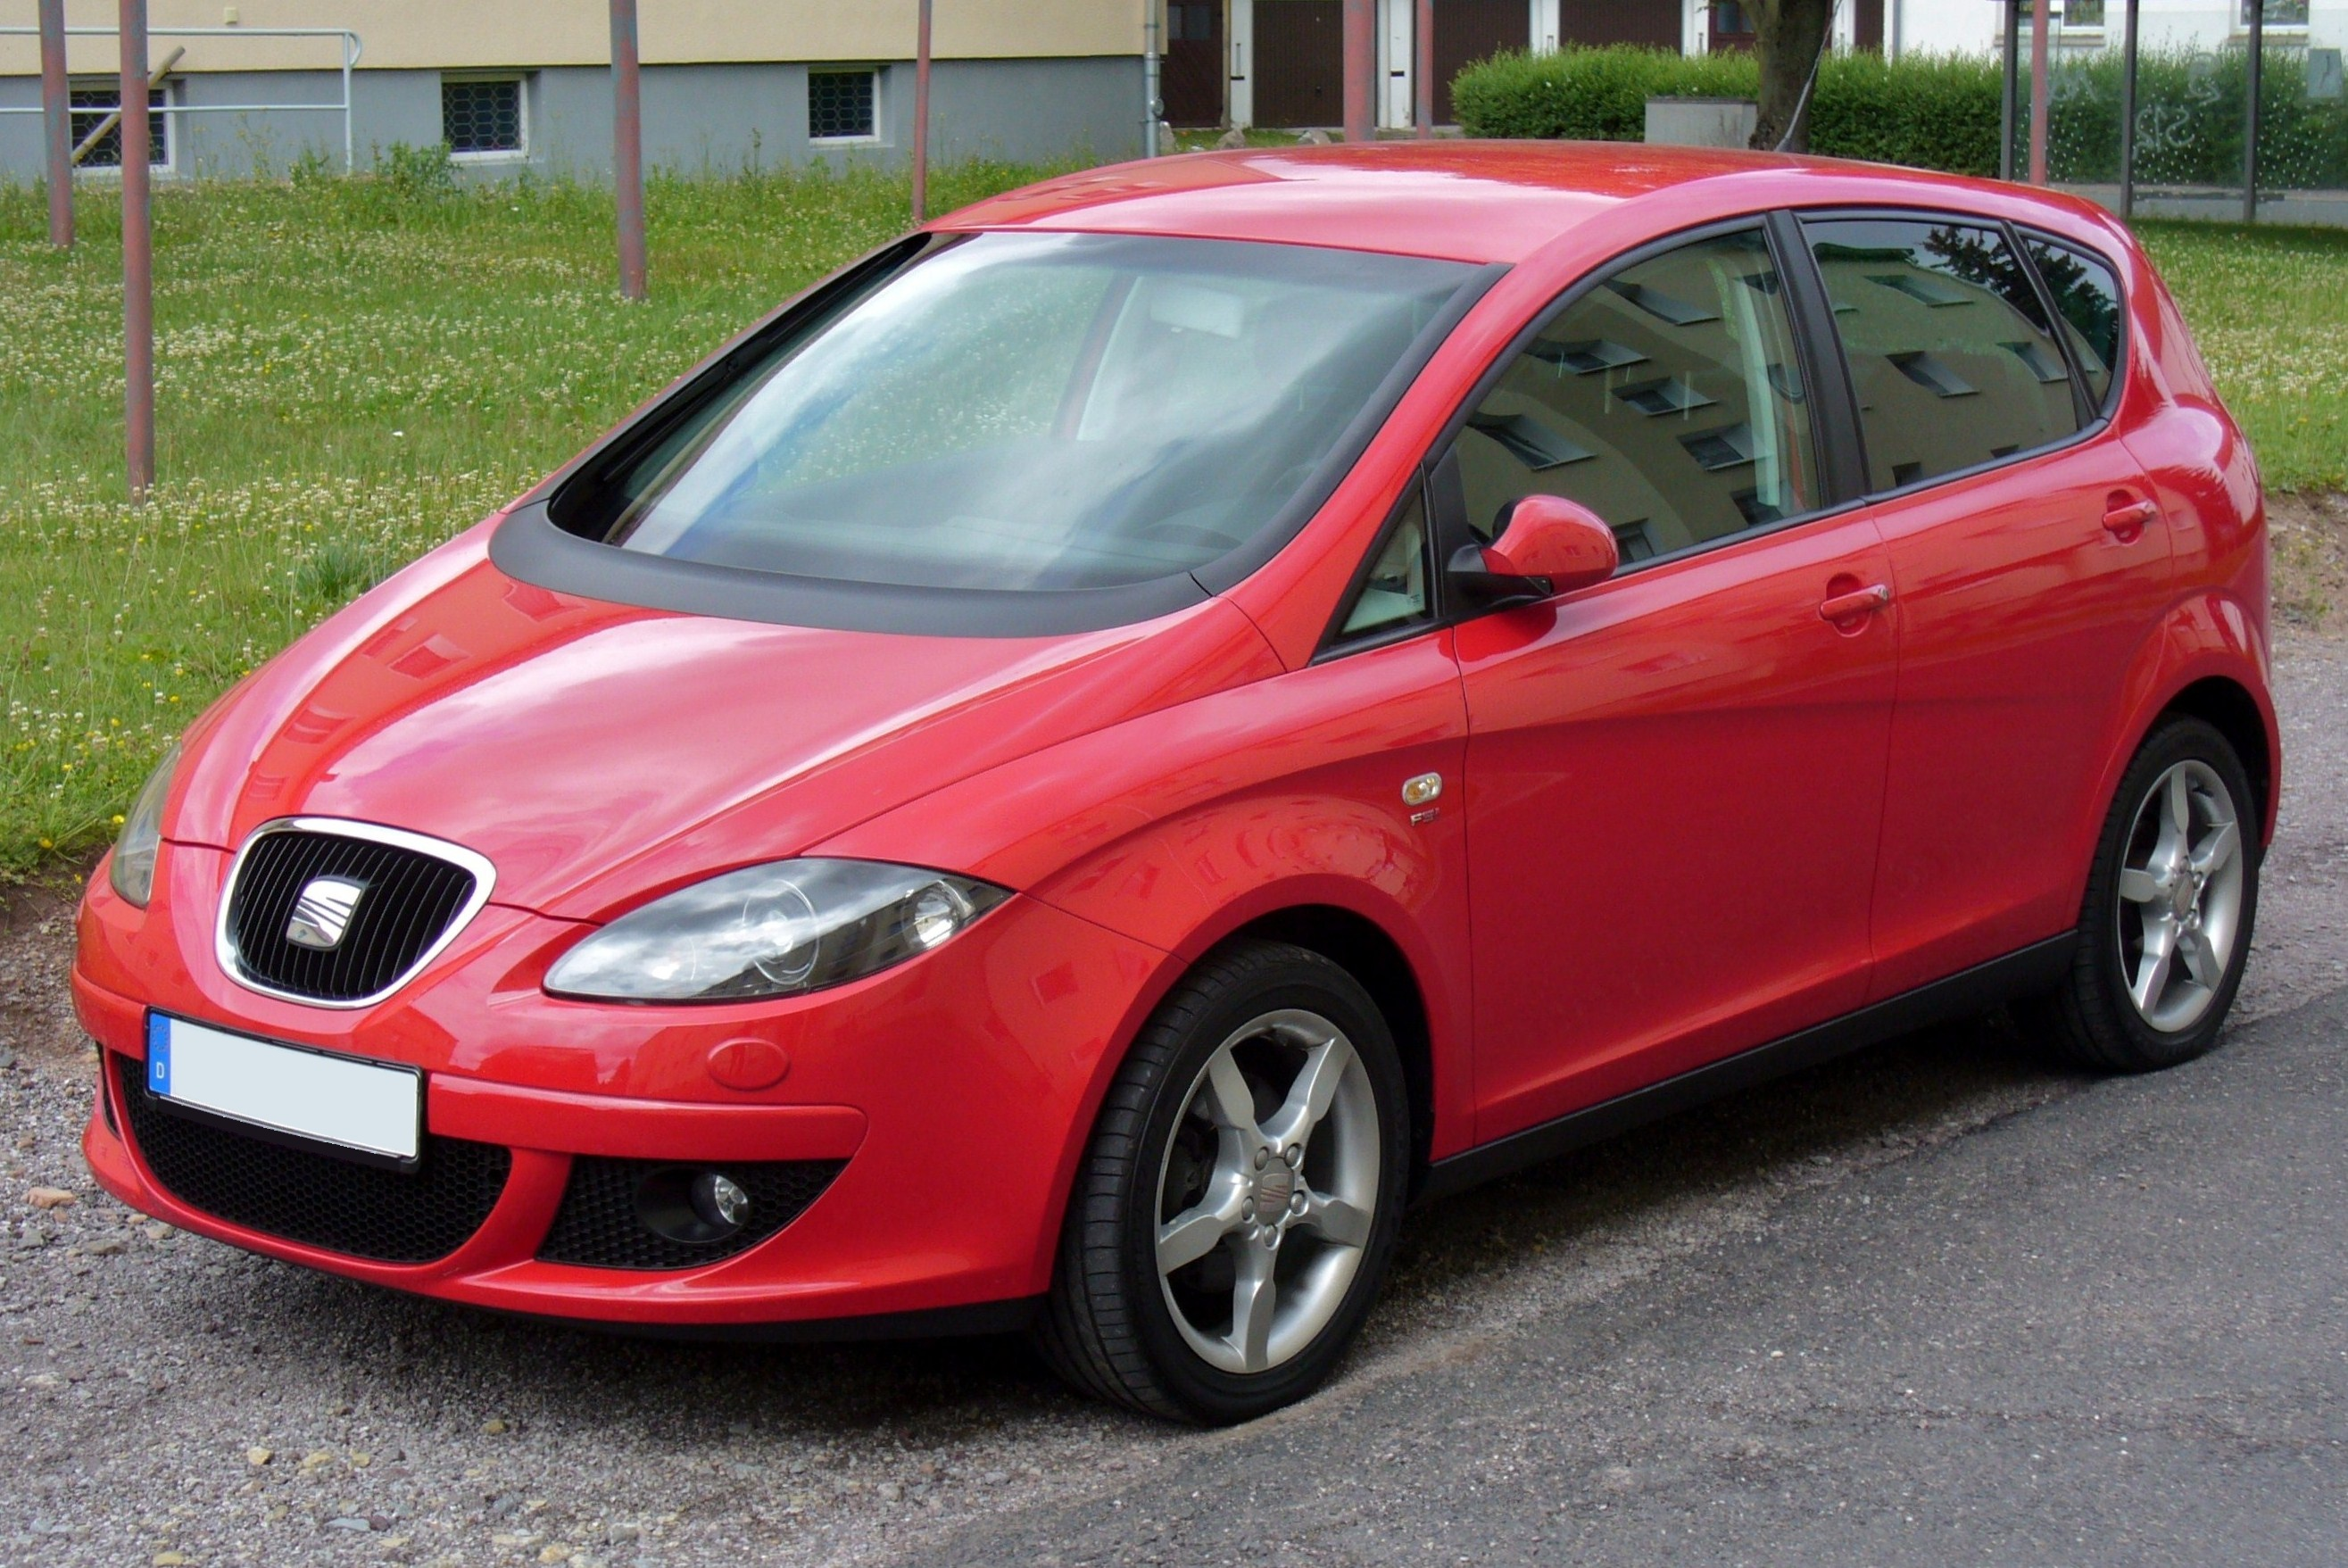 Seat altea photo - 10